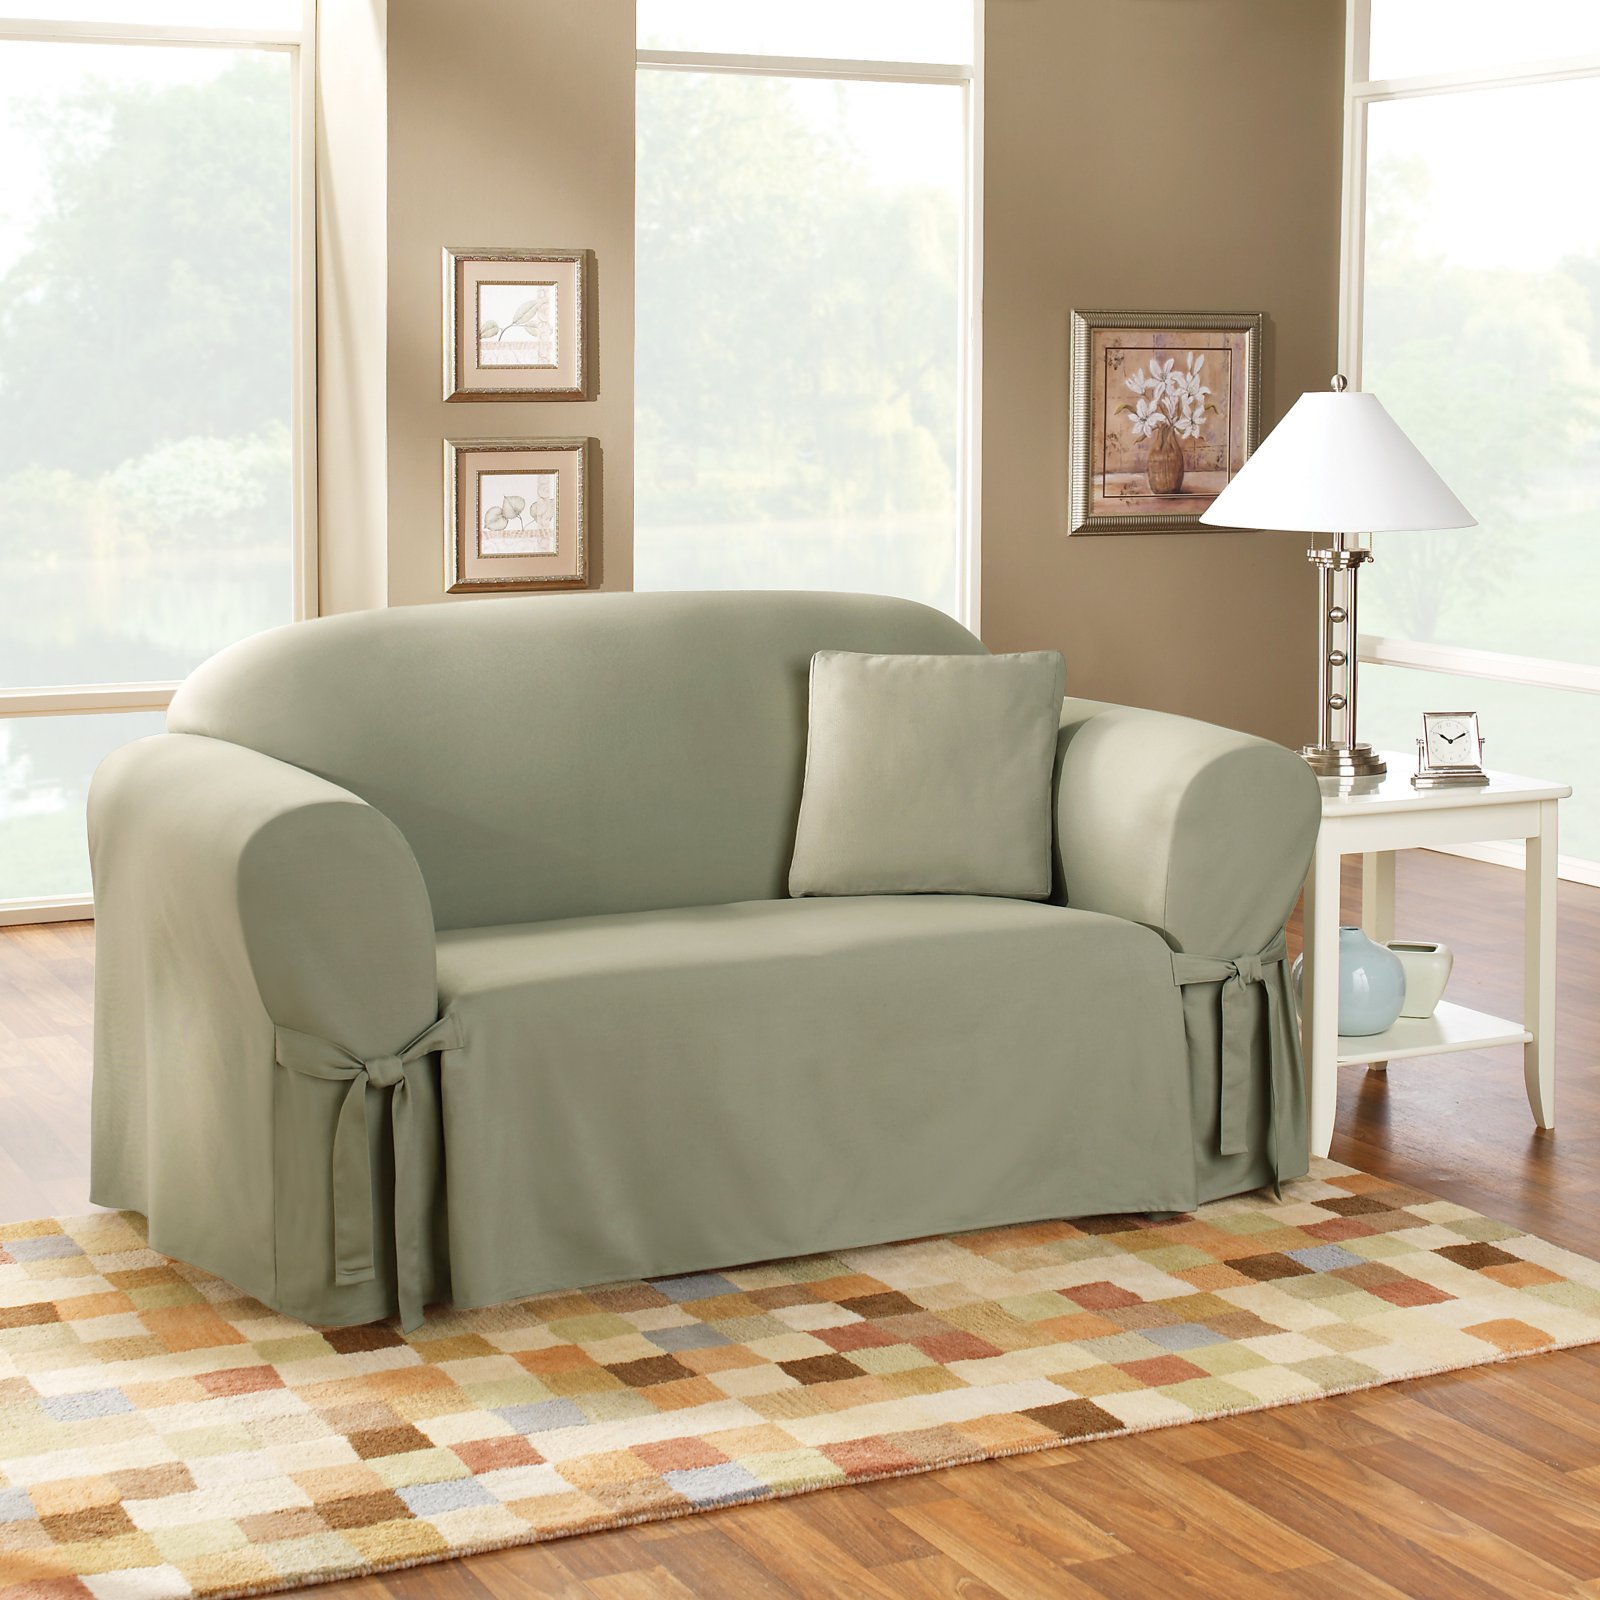 sage sofa slipcovers atlanta 3 seater bed sure fit cotton duck slipcover walmart